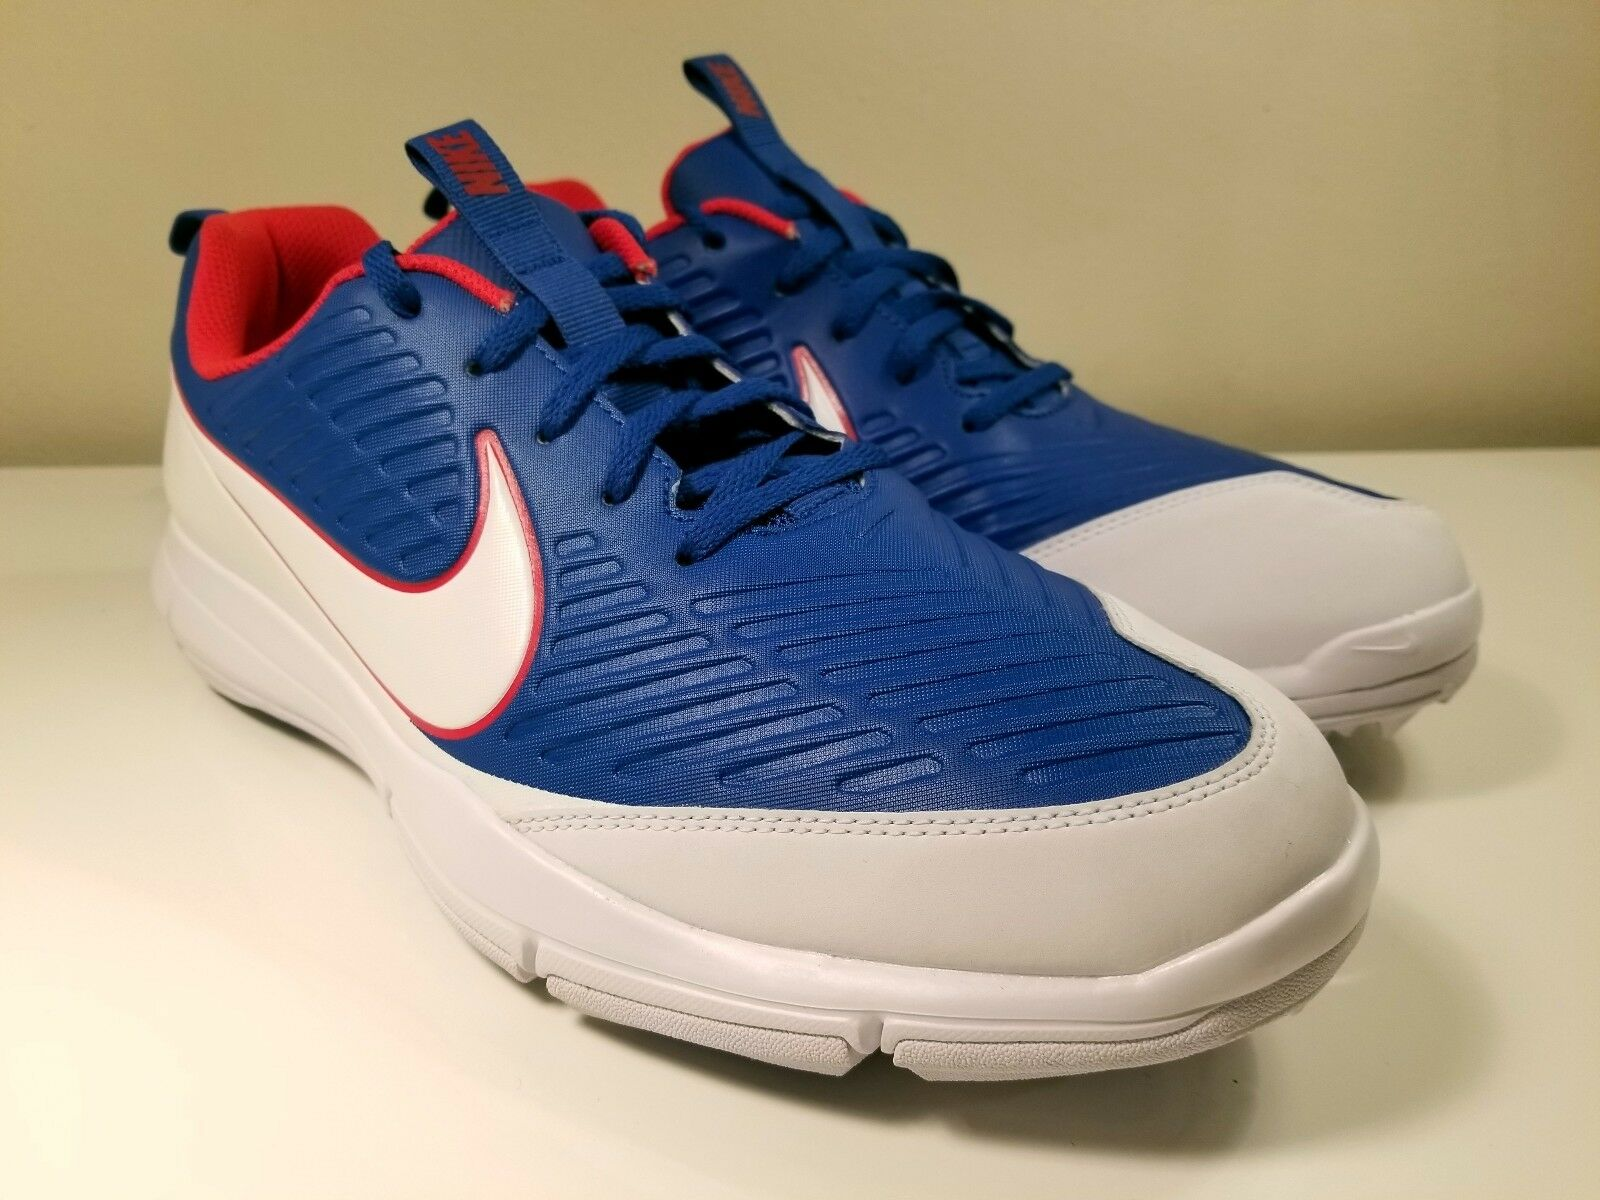 Nike Explorer 2 Spikeless Golf Blue Shoes Blue Golf Jay White Red (849957-401) Size 11.5 6223fb